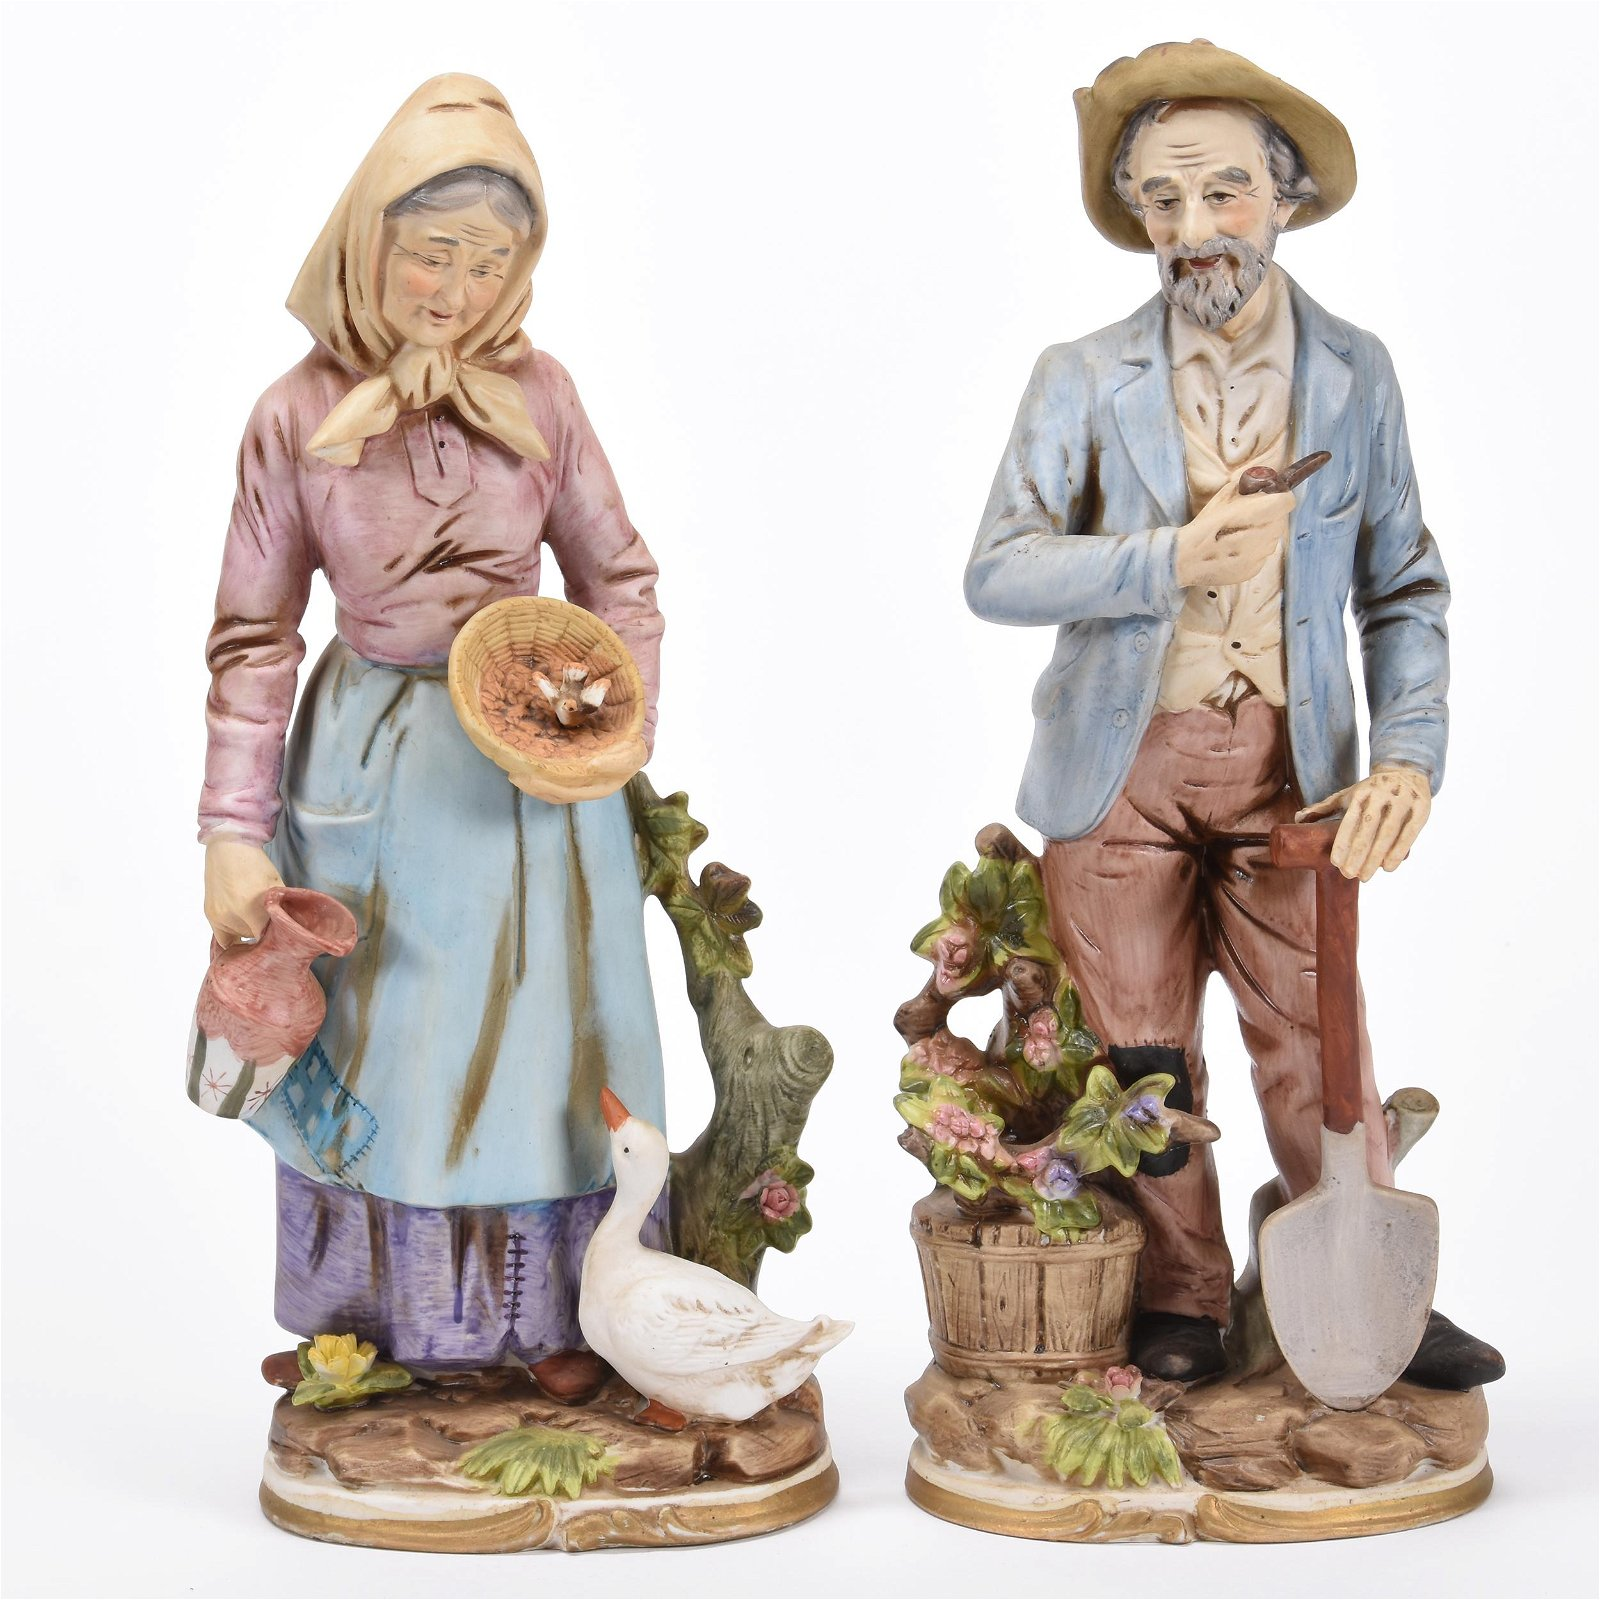 Modern Bisque Figurines